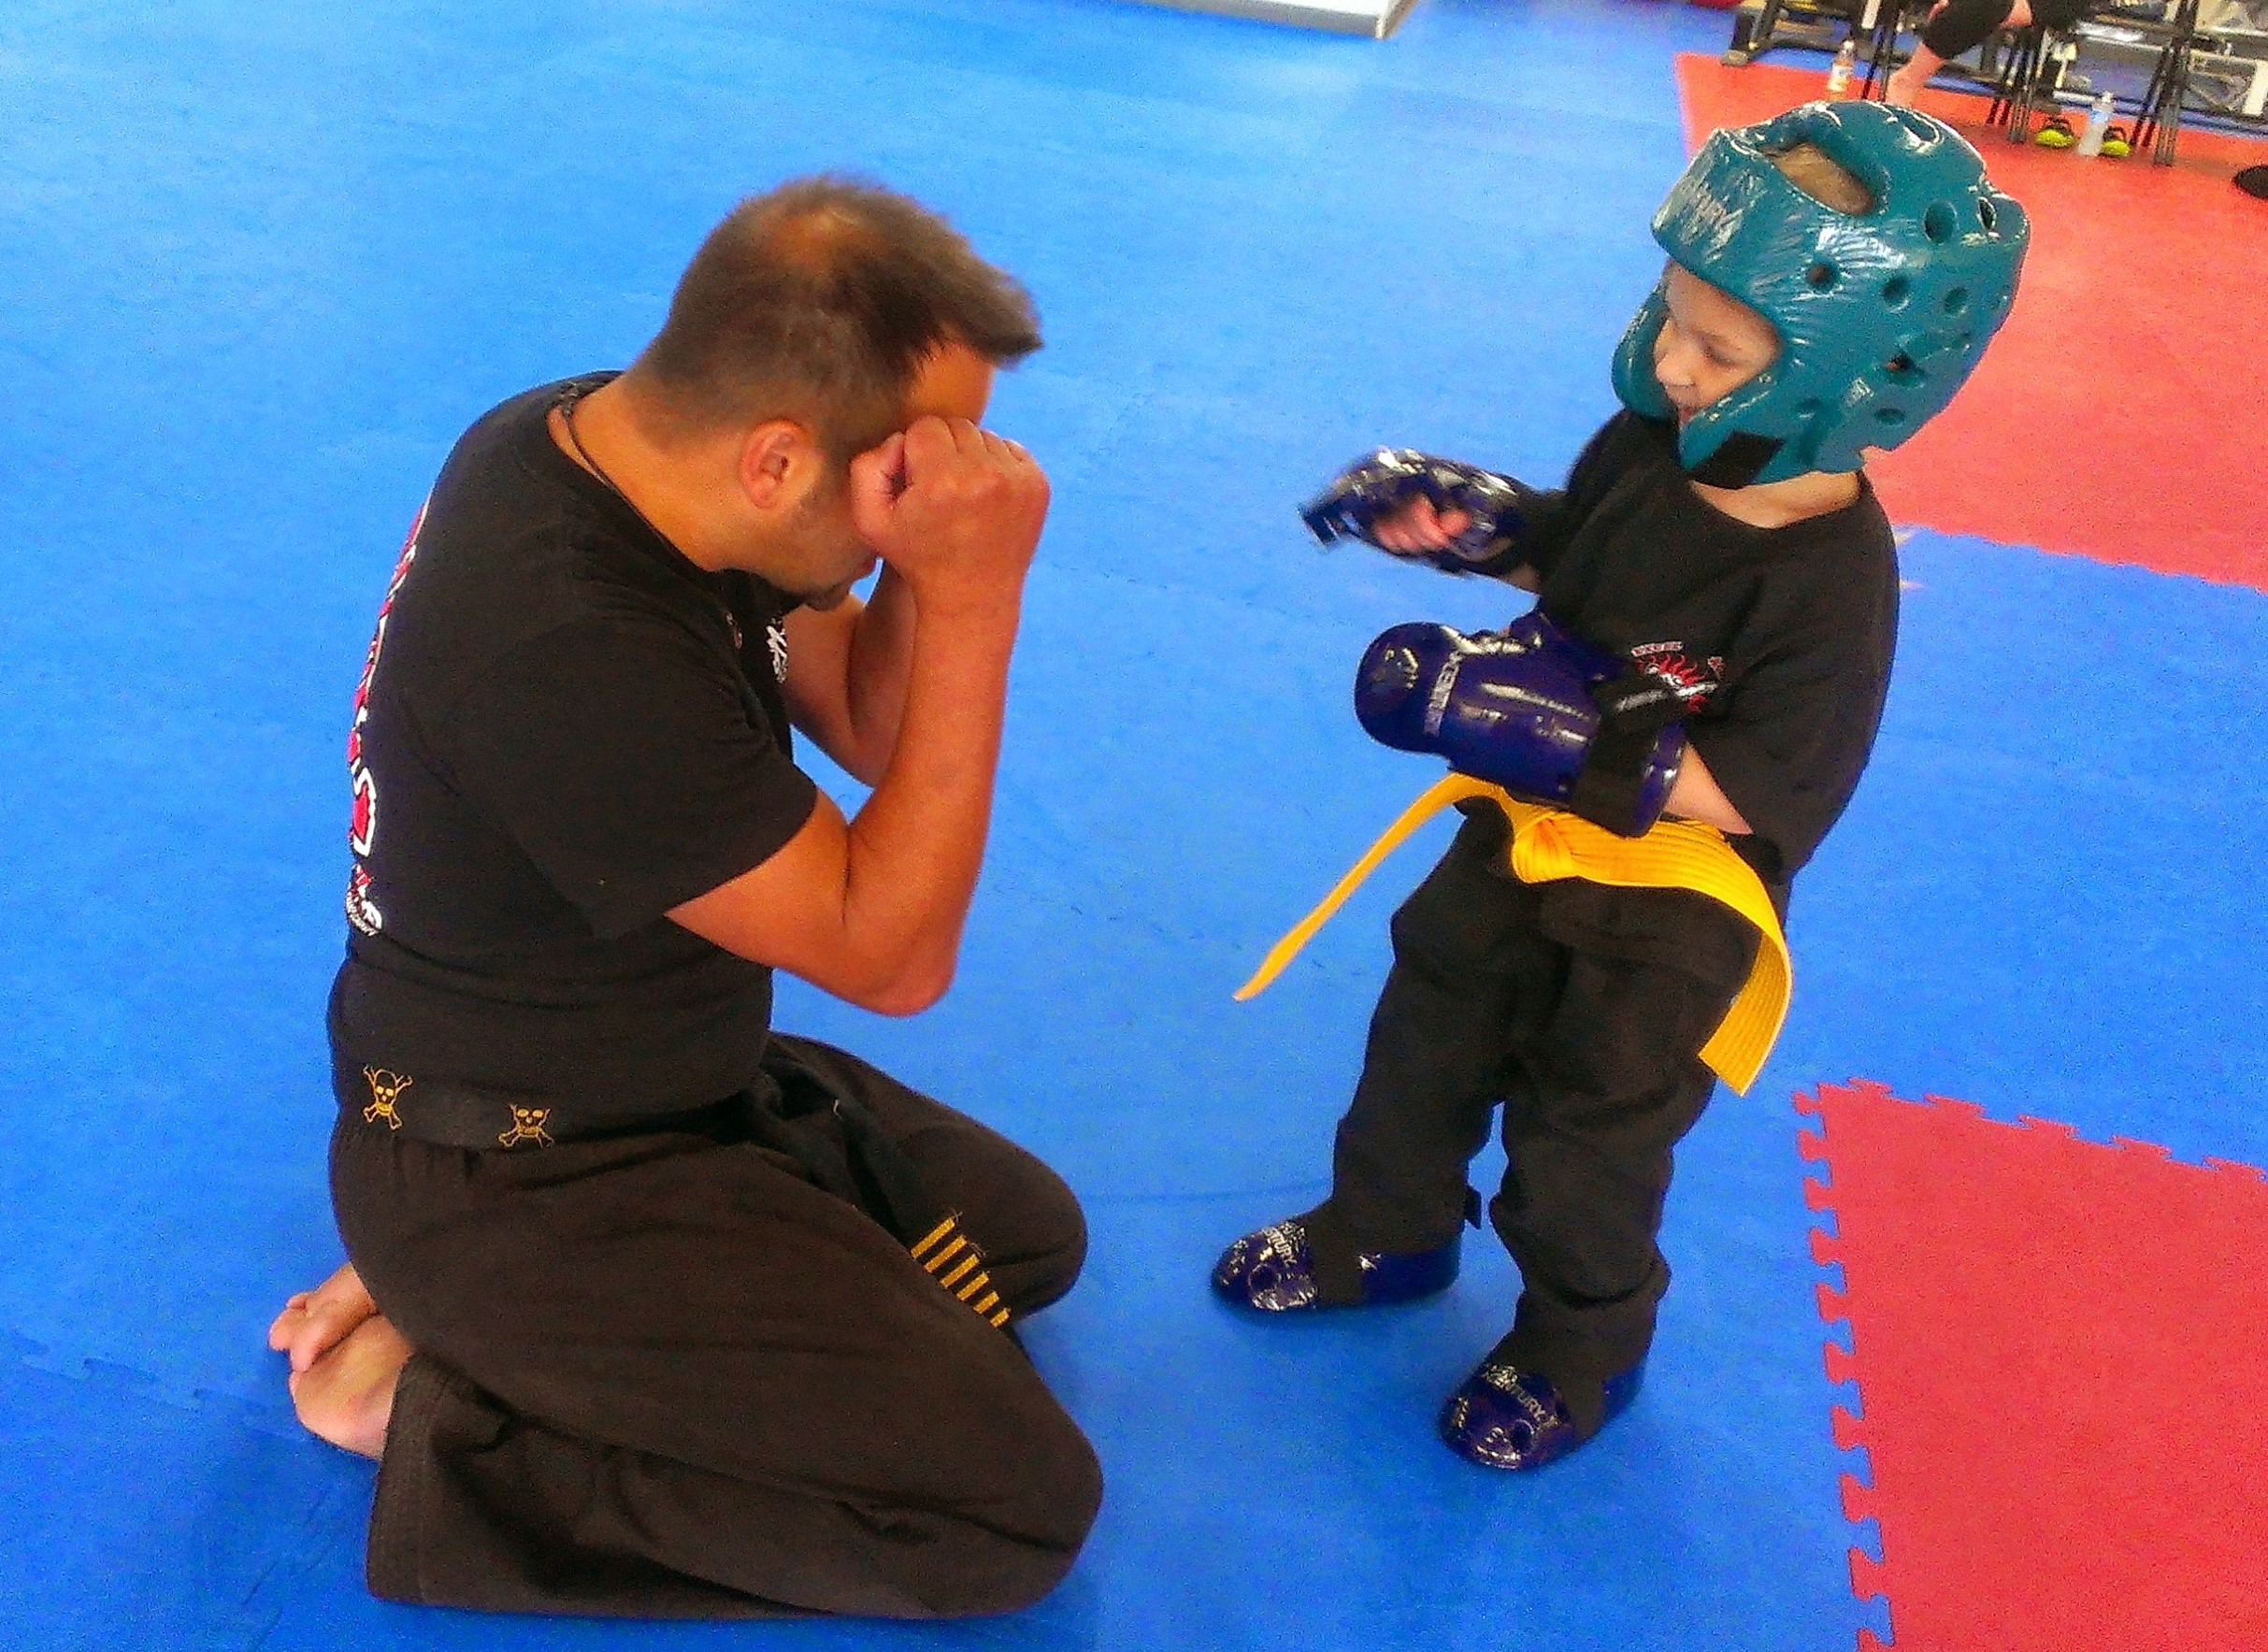 Head instructor sparring with young student